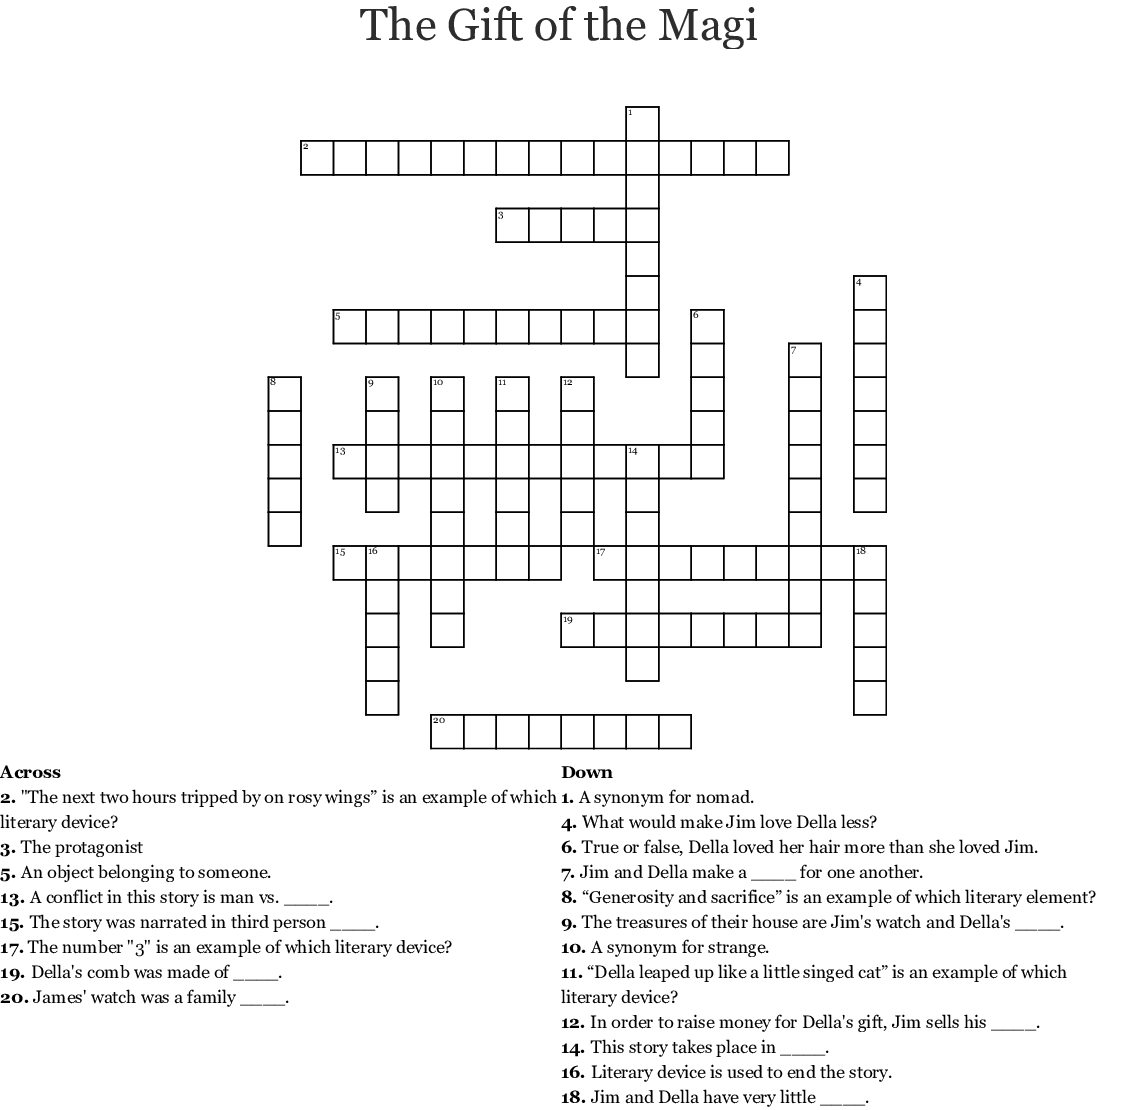 The T Of The Magi Crossword